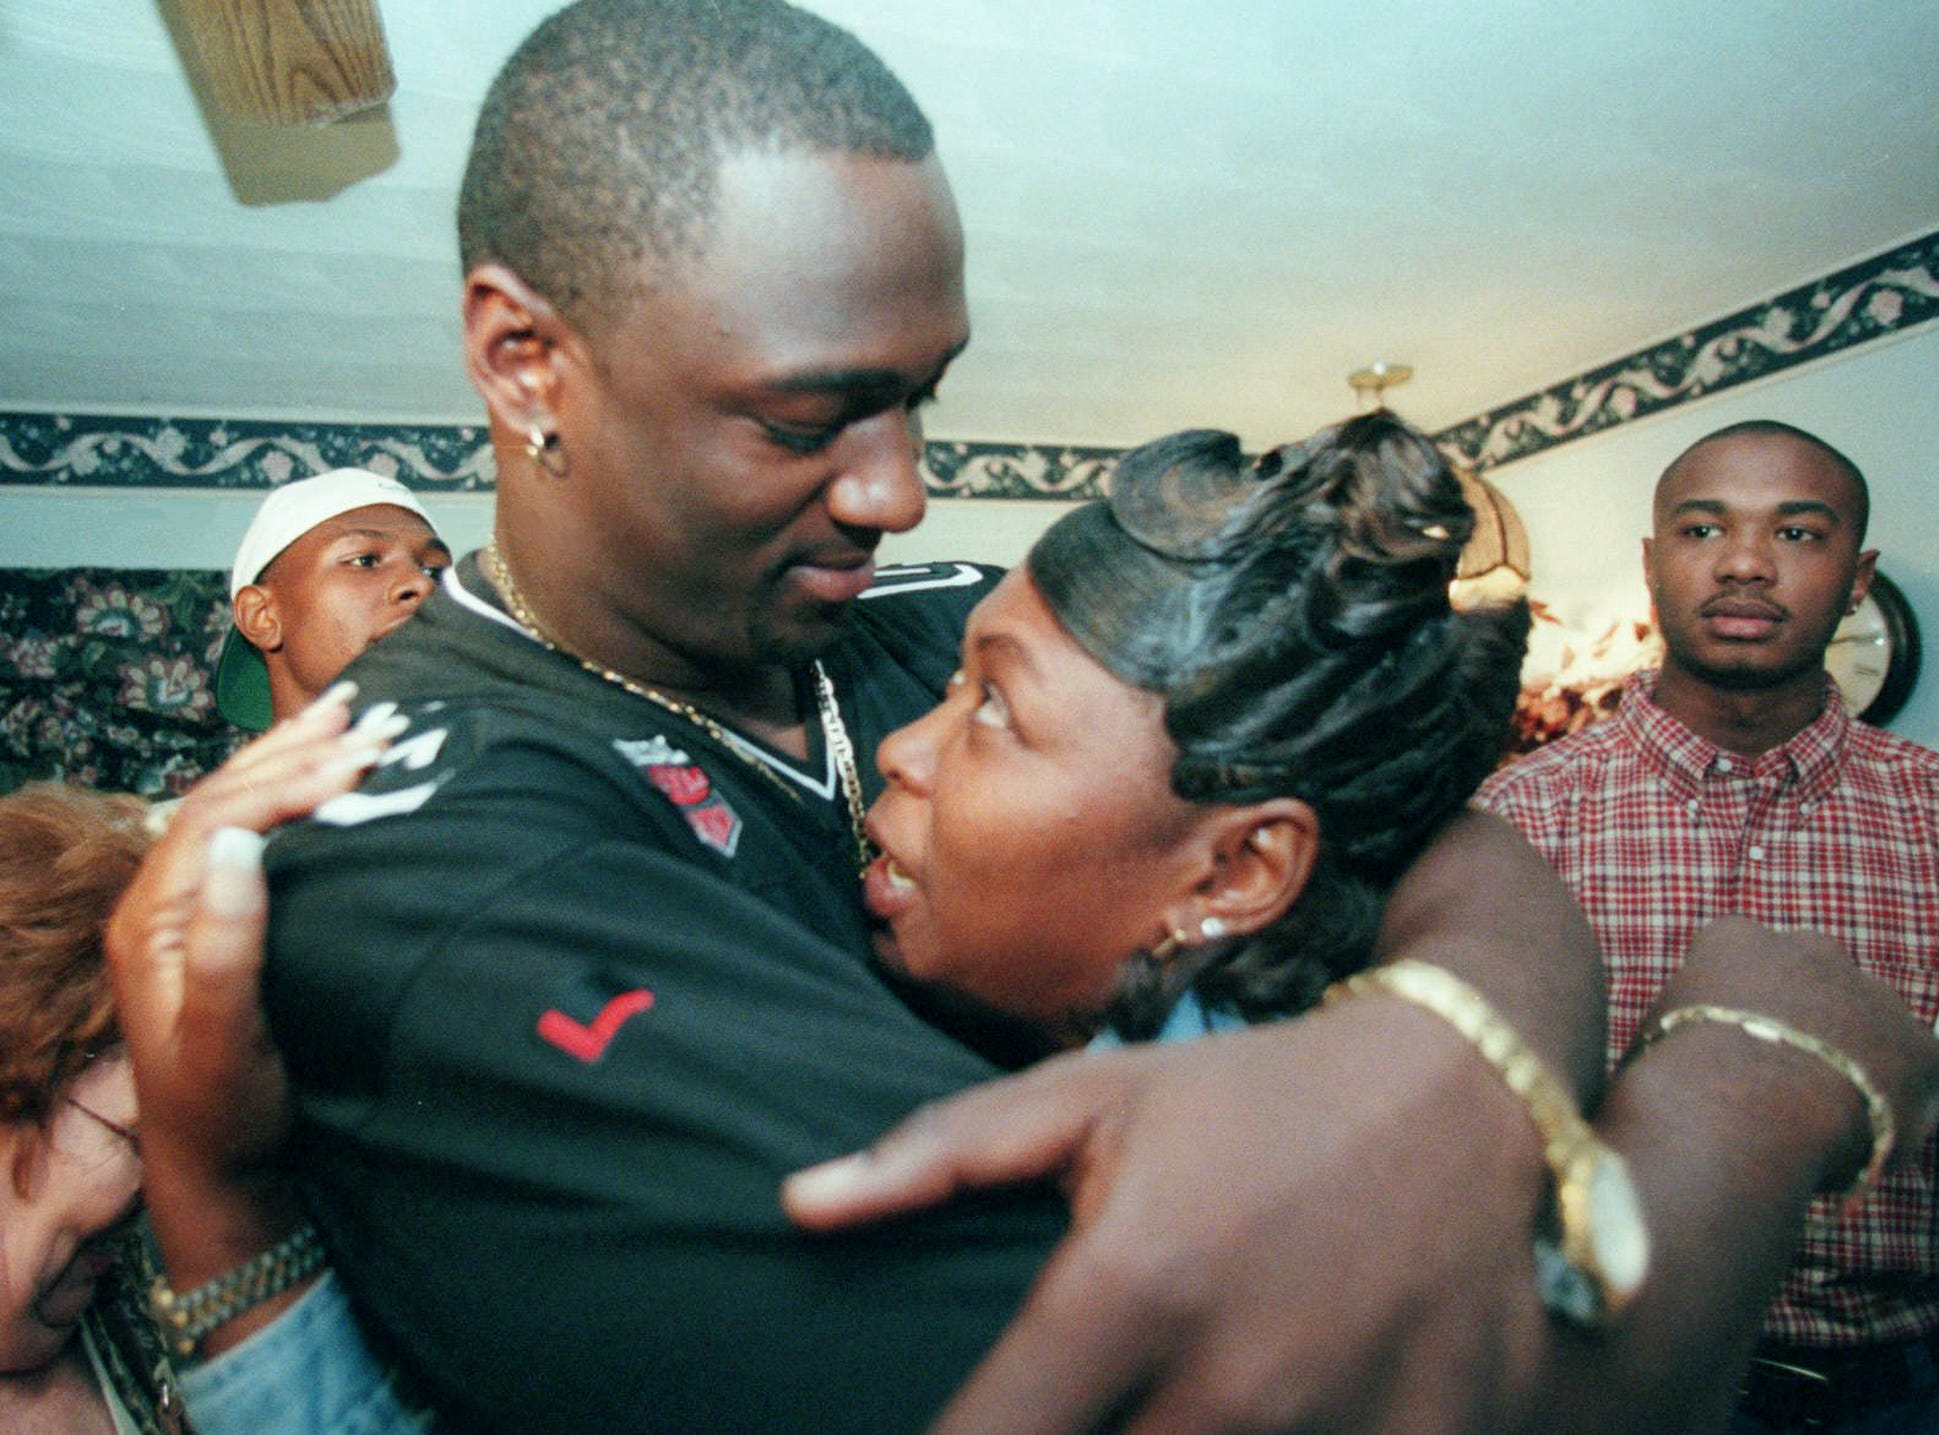 North Fort Myers High School graduate Jevon Kearse, a defensive end for the University of Florida, embraces his mother, Lessie Green, after finding out he was chosen by the Tennessee Titans in the first round of the NFL draft April 17, 1999.